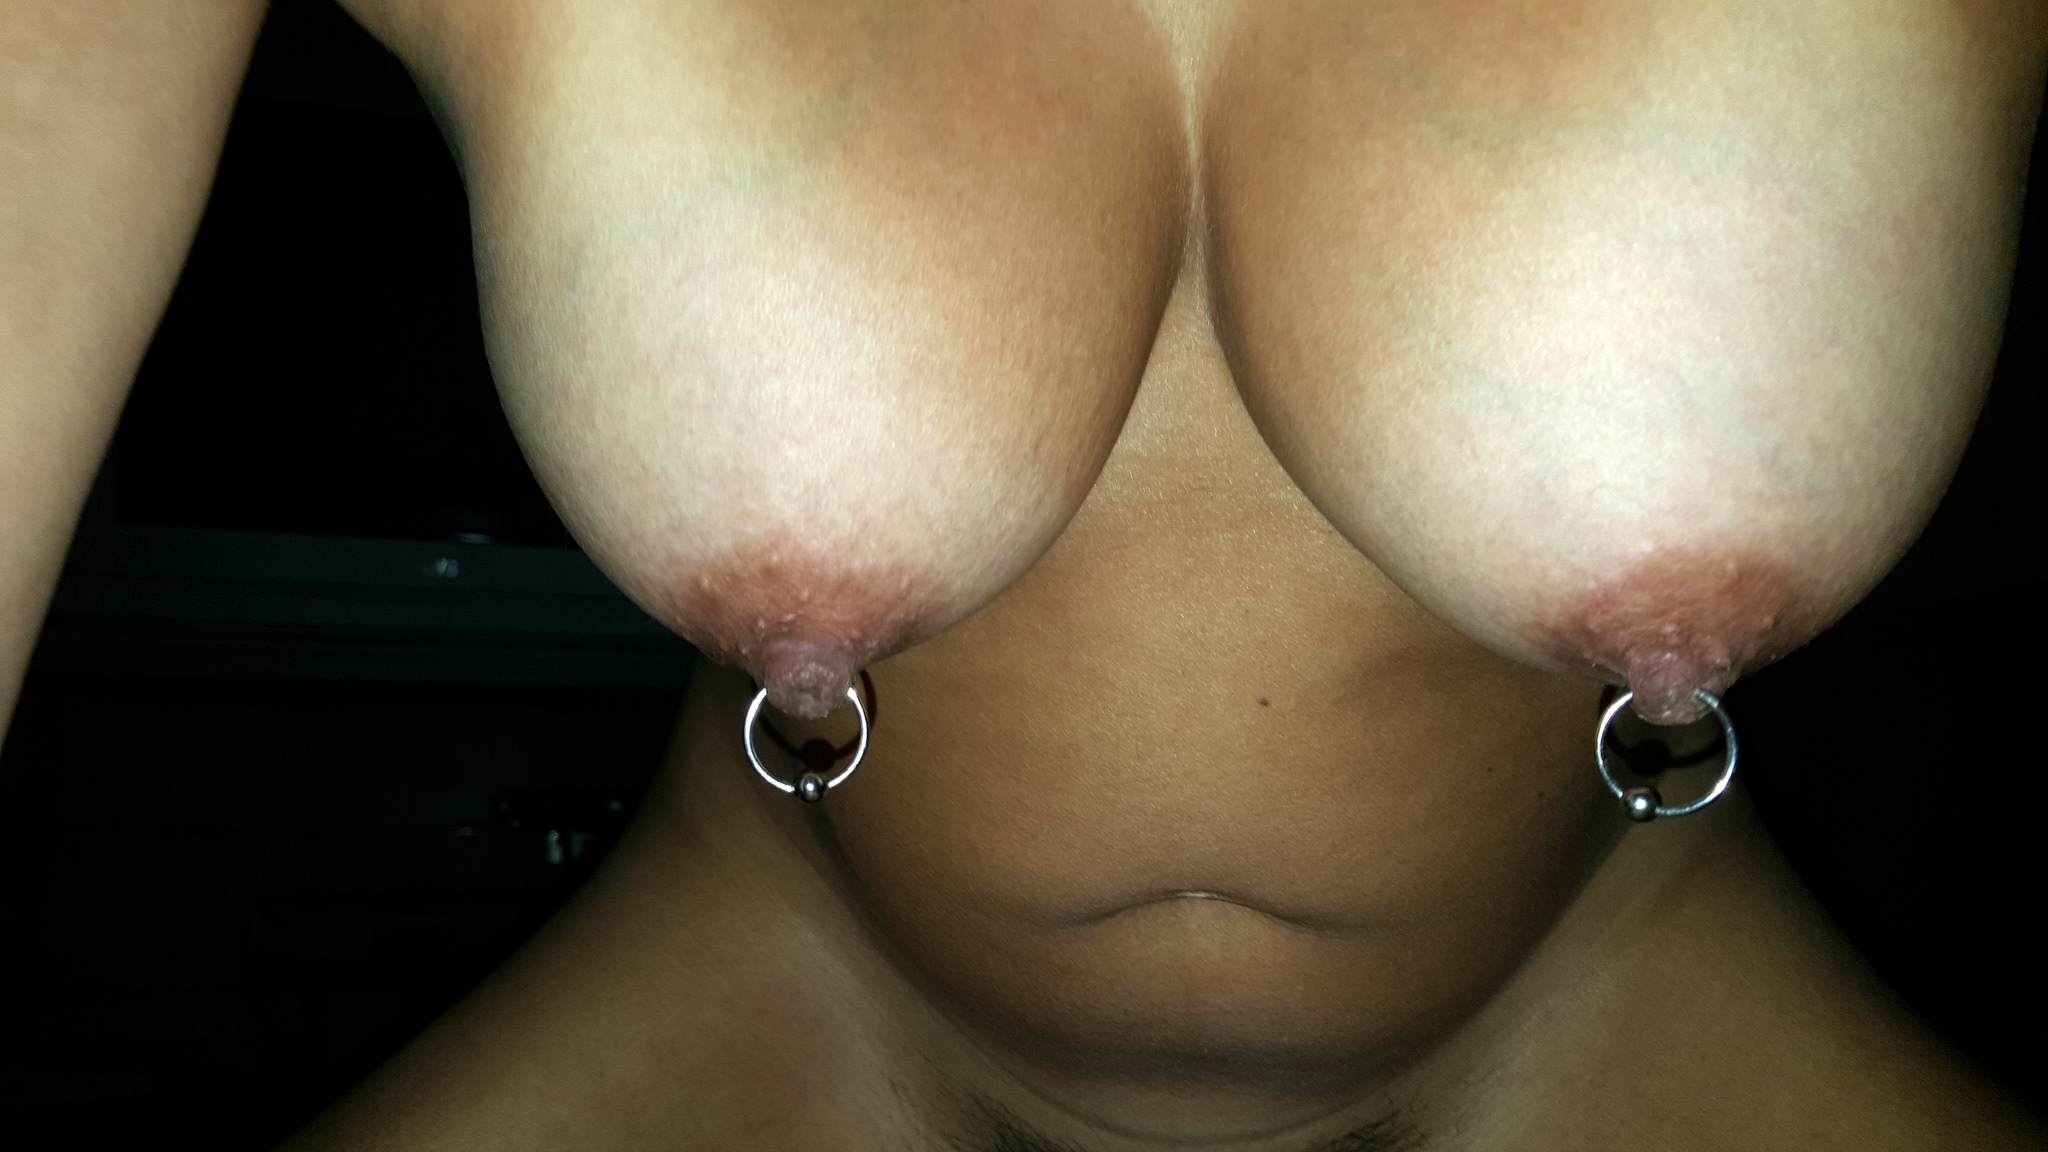 Big nipple rings porn #4